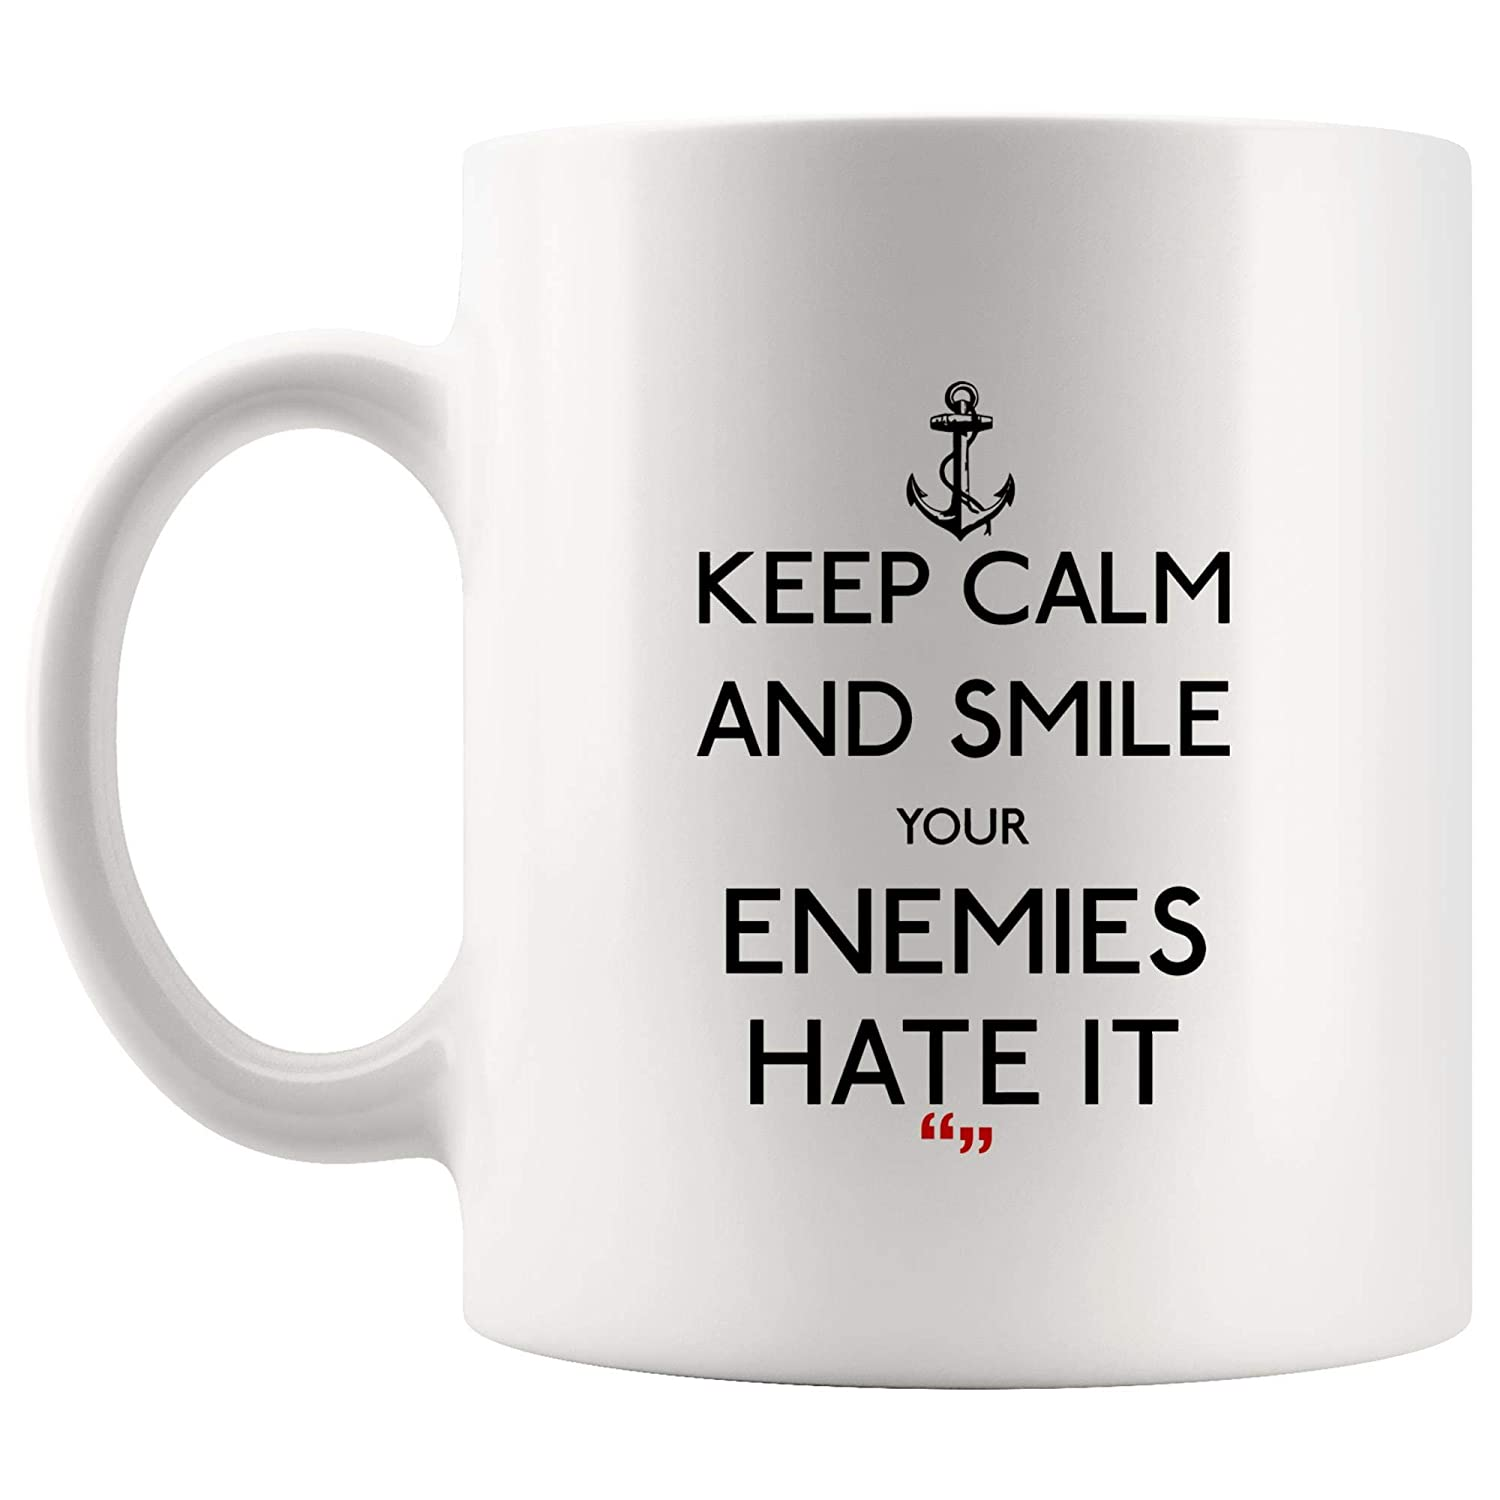 Amazon.com: Keep Calm Smile Enemies Hate It Coffee Mug Funny ...